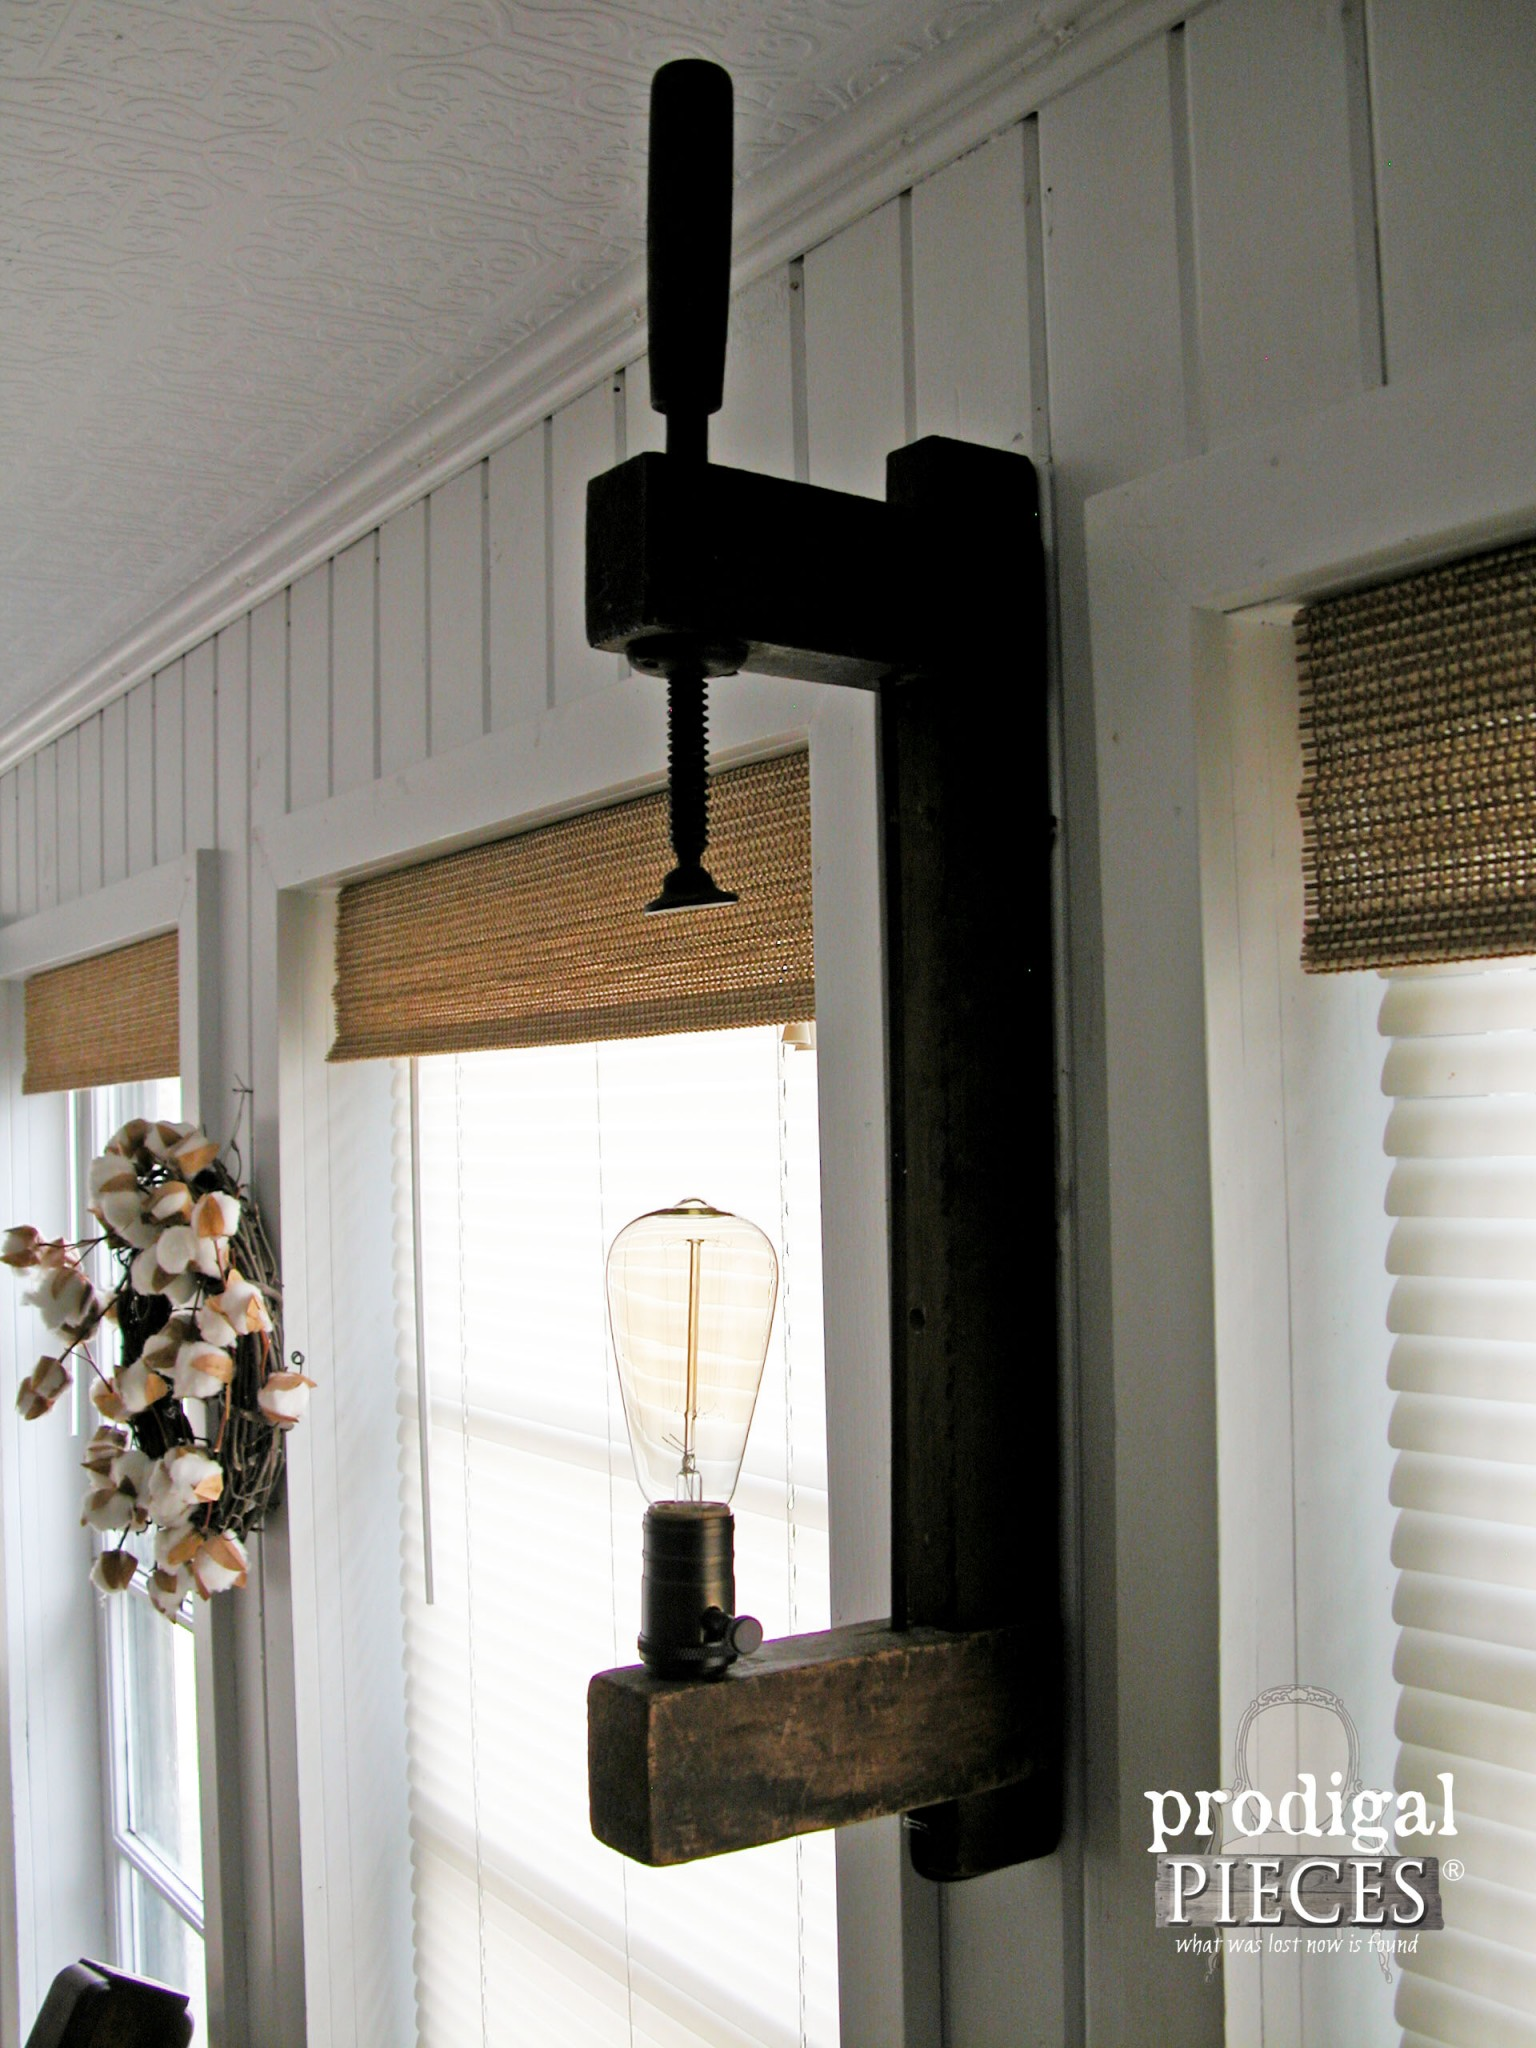 Upcycled Wooden Farmhouse Clamp as Wall Sconce by Prodigal Pieces | www.prodigalpieces.com